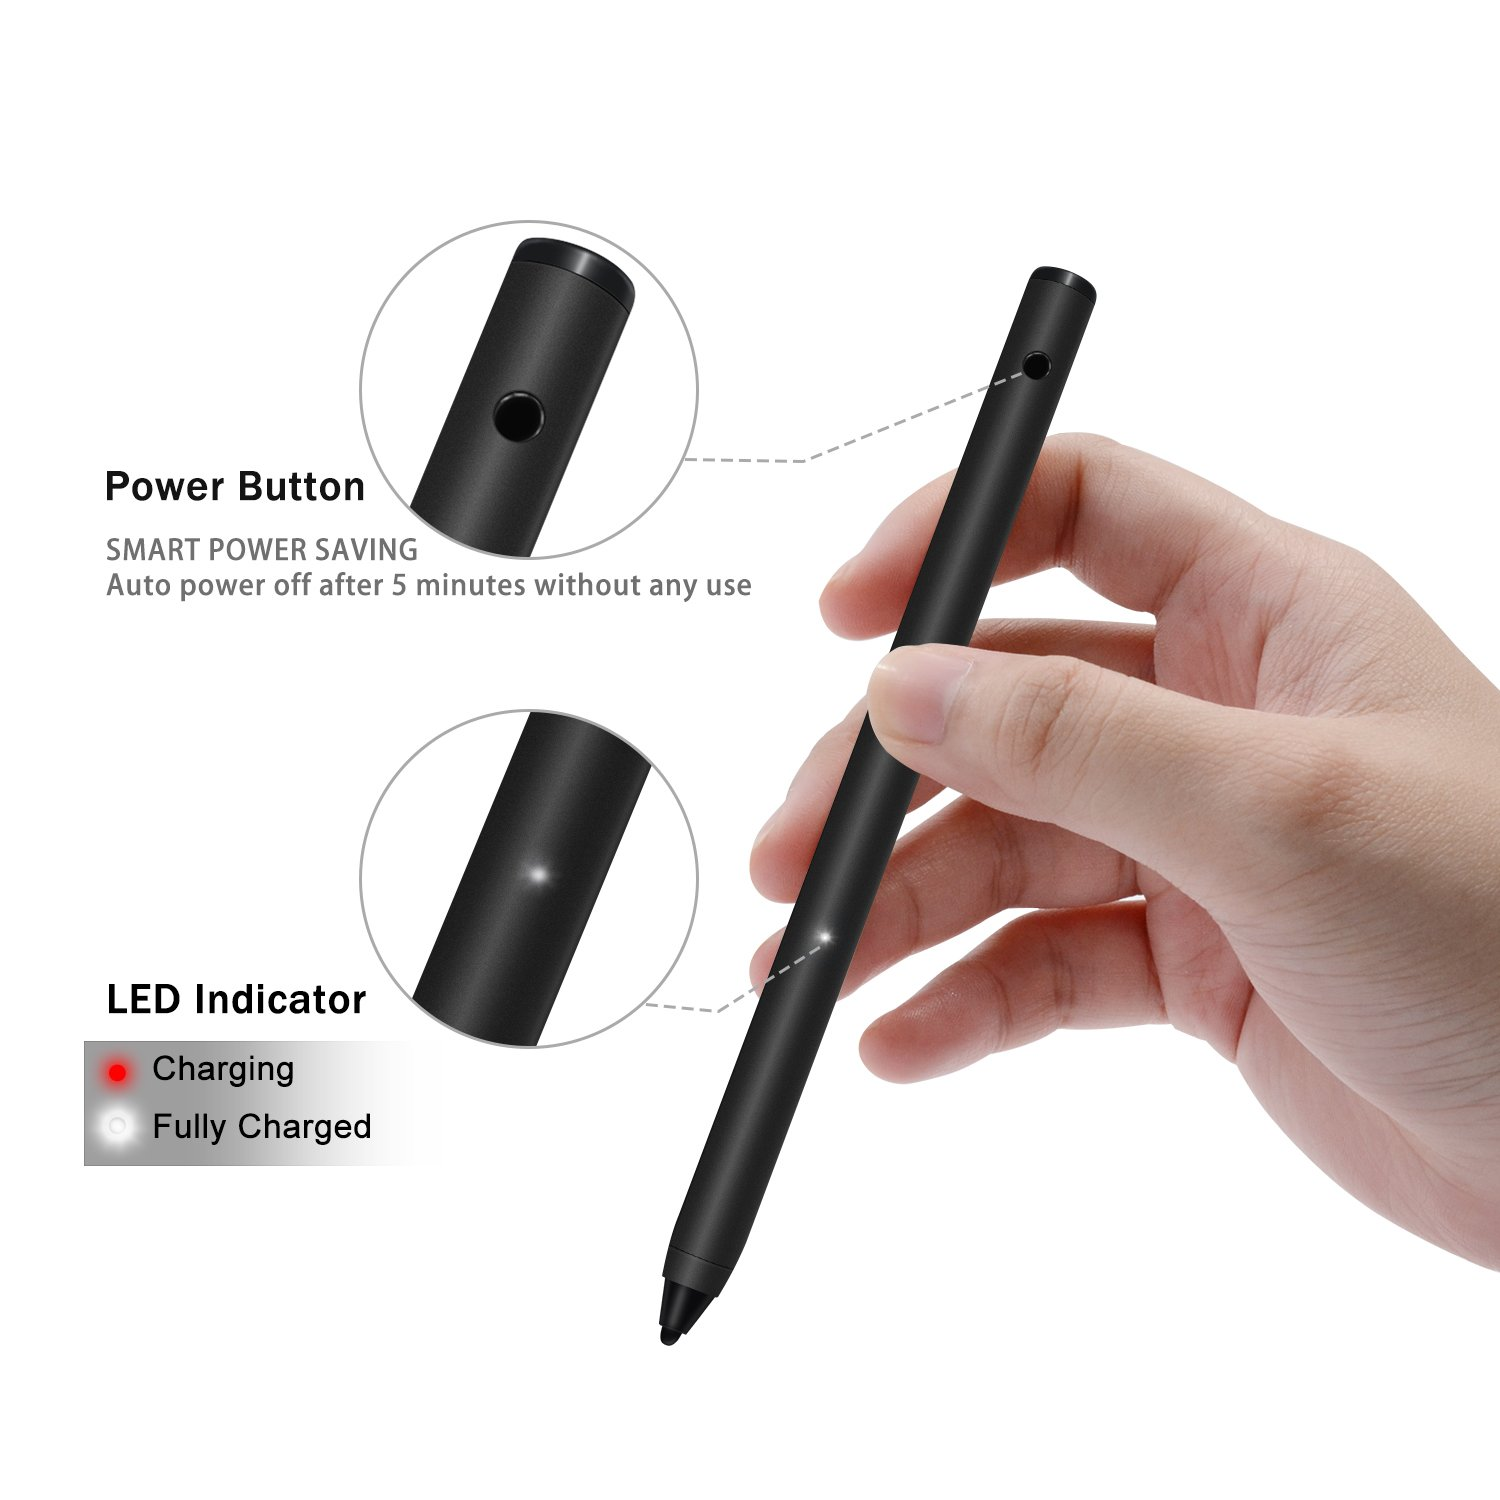 Electronic Stylus, LEFON Active Stylus Digital Pens with 1.8 mm Fine Point Copper Tip for iPhone/iPad/Samsung Tablets and Other Capacitive Touchscreens Devices (Black) by Lefon (Image #4)